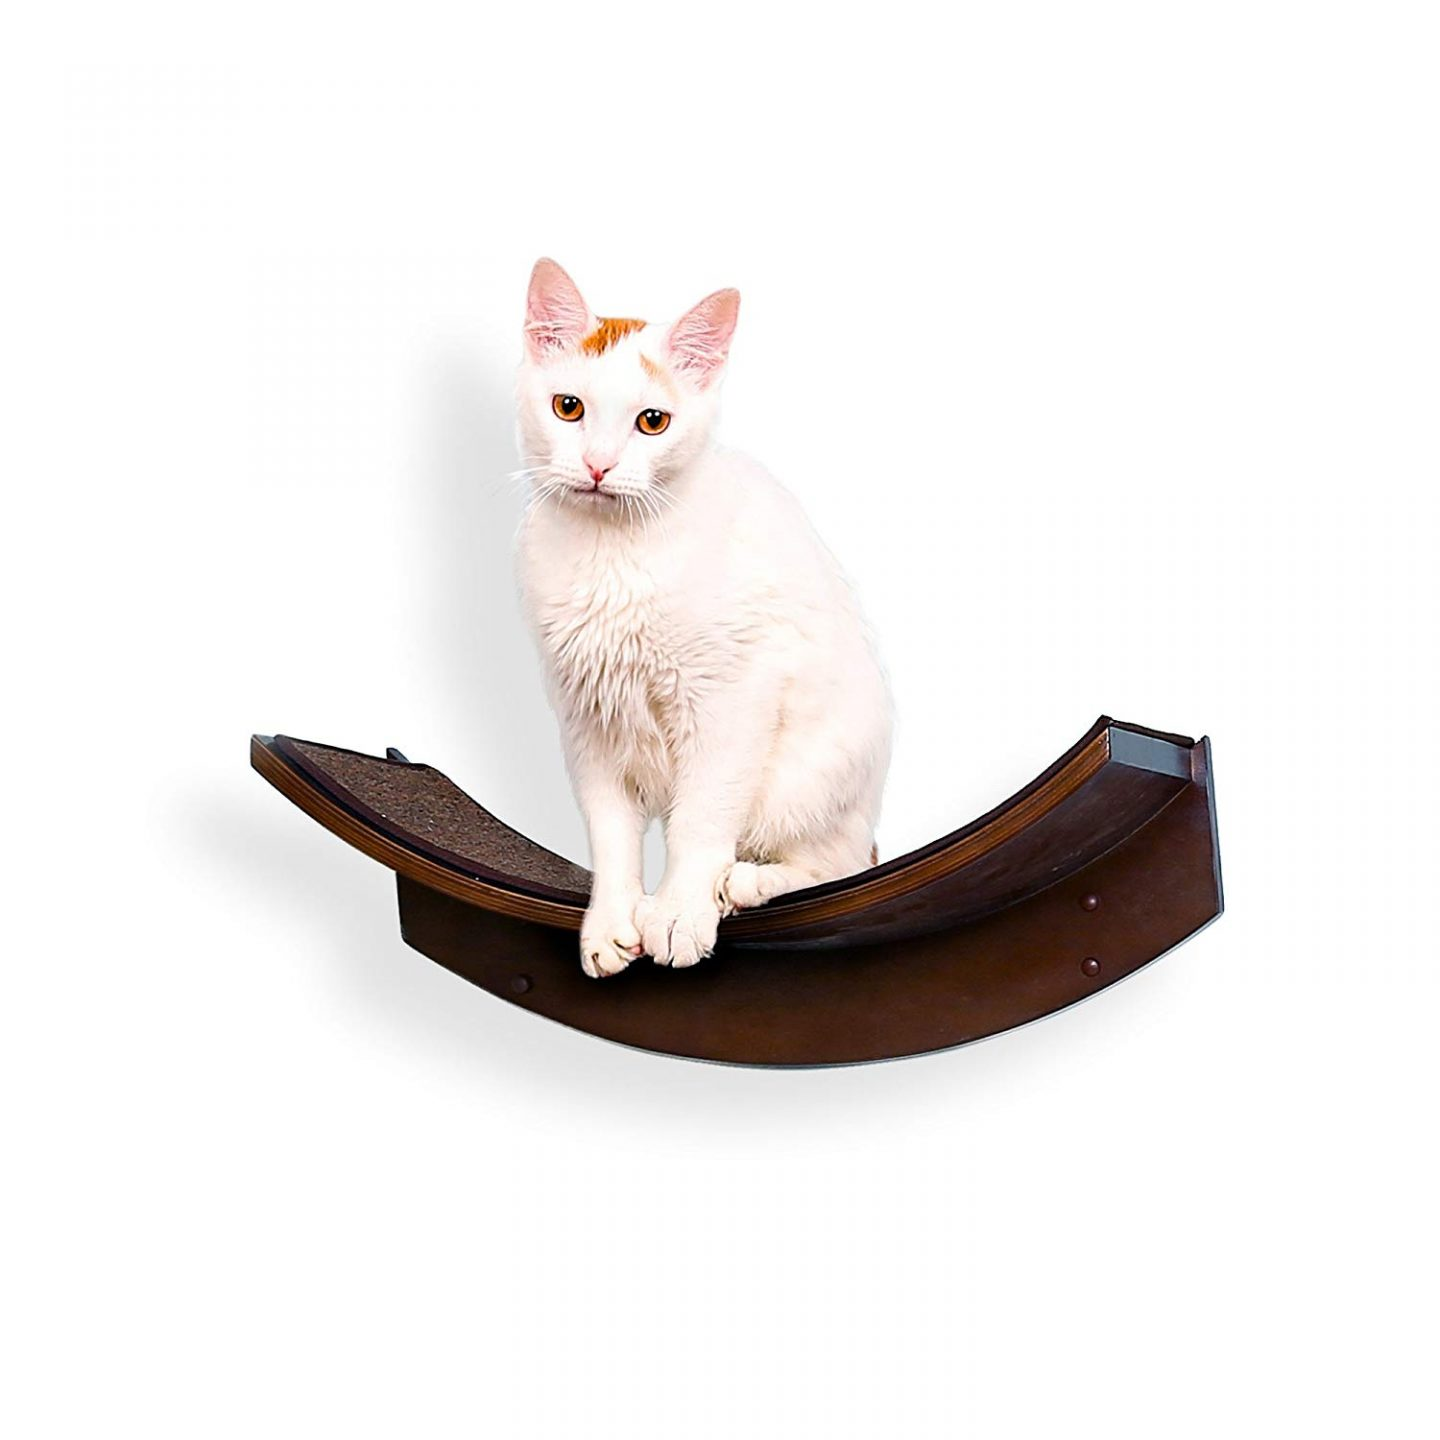 Curved Mahogany Cat Shelf With Replaceable Carpet - Finally a wall mounted cat perch that's easy to clean! But if a cat perch with pretty silk leaves or a stylish wall mounted cat hammock is more your style check out the PICTURES in this post for them too.